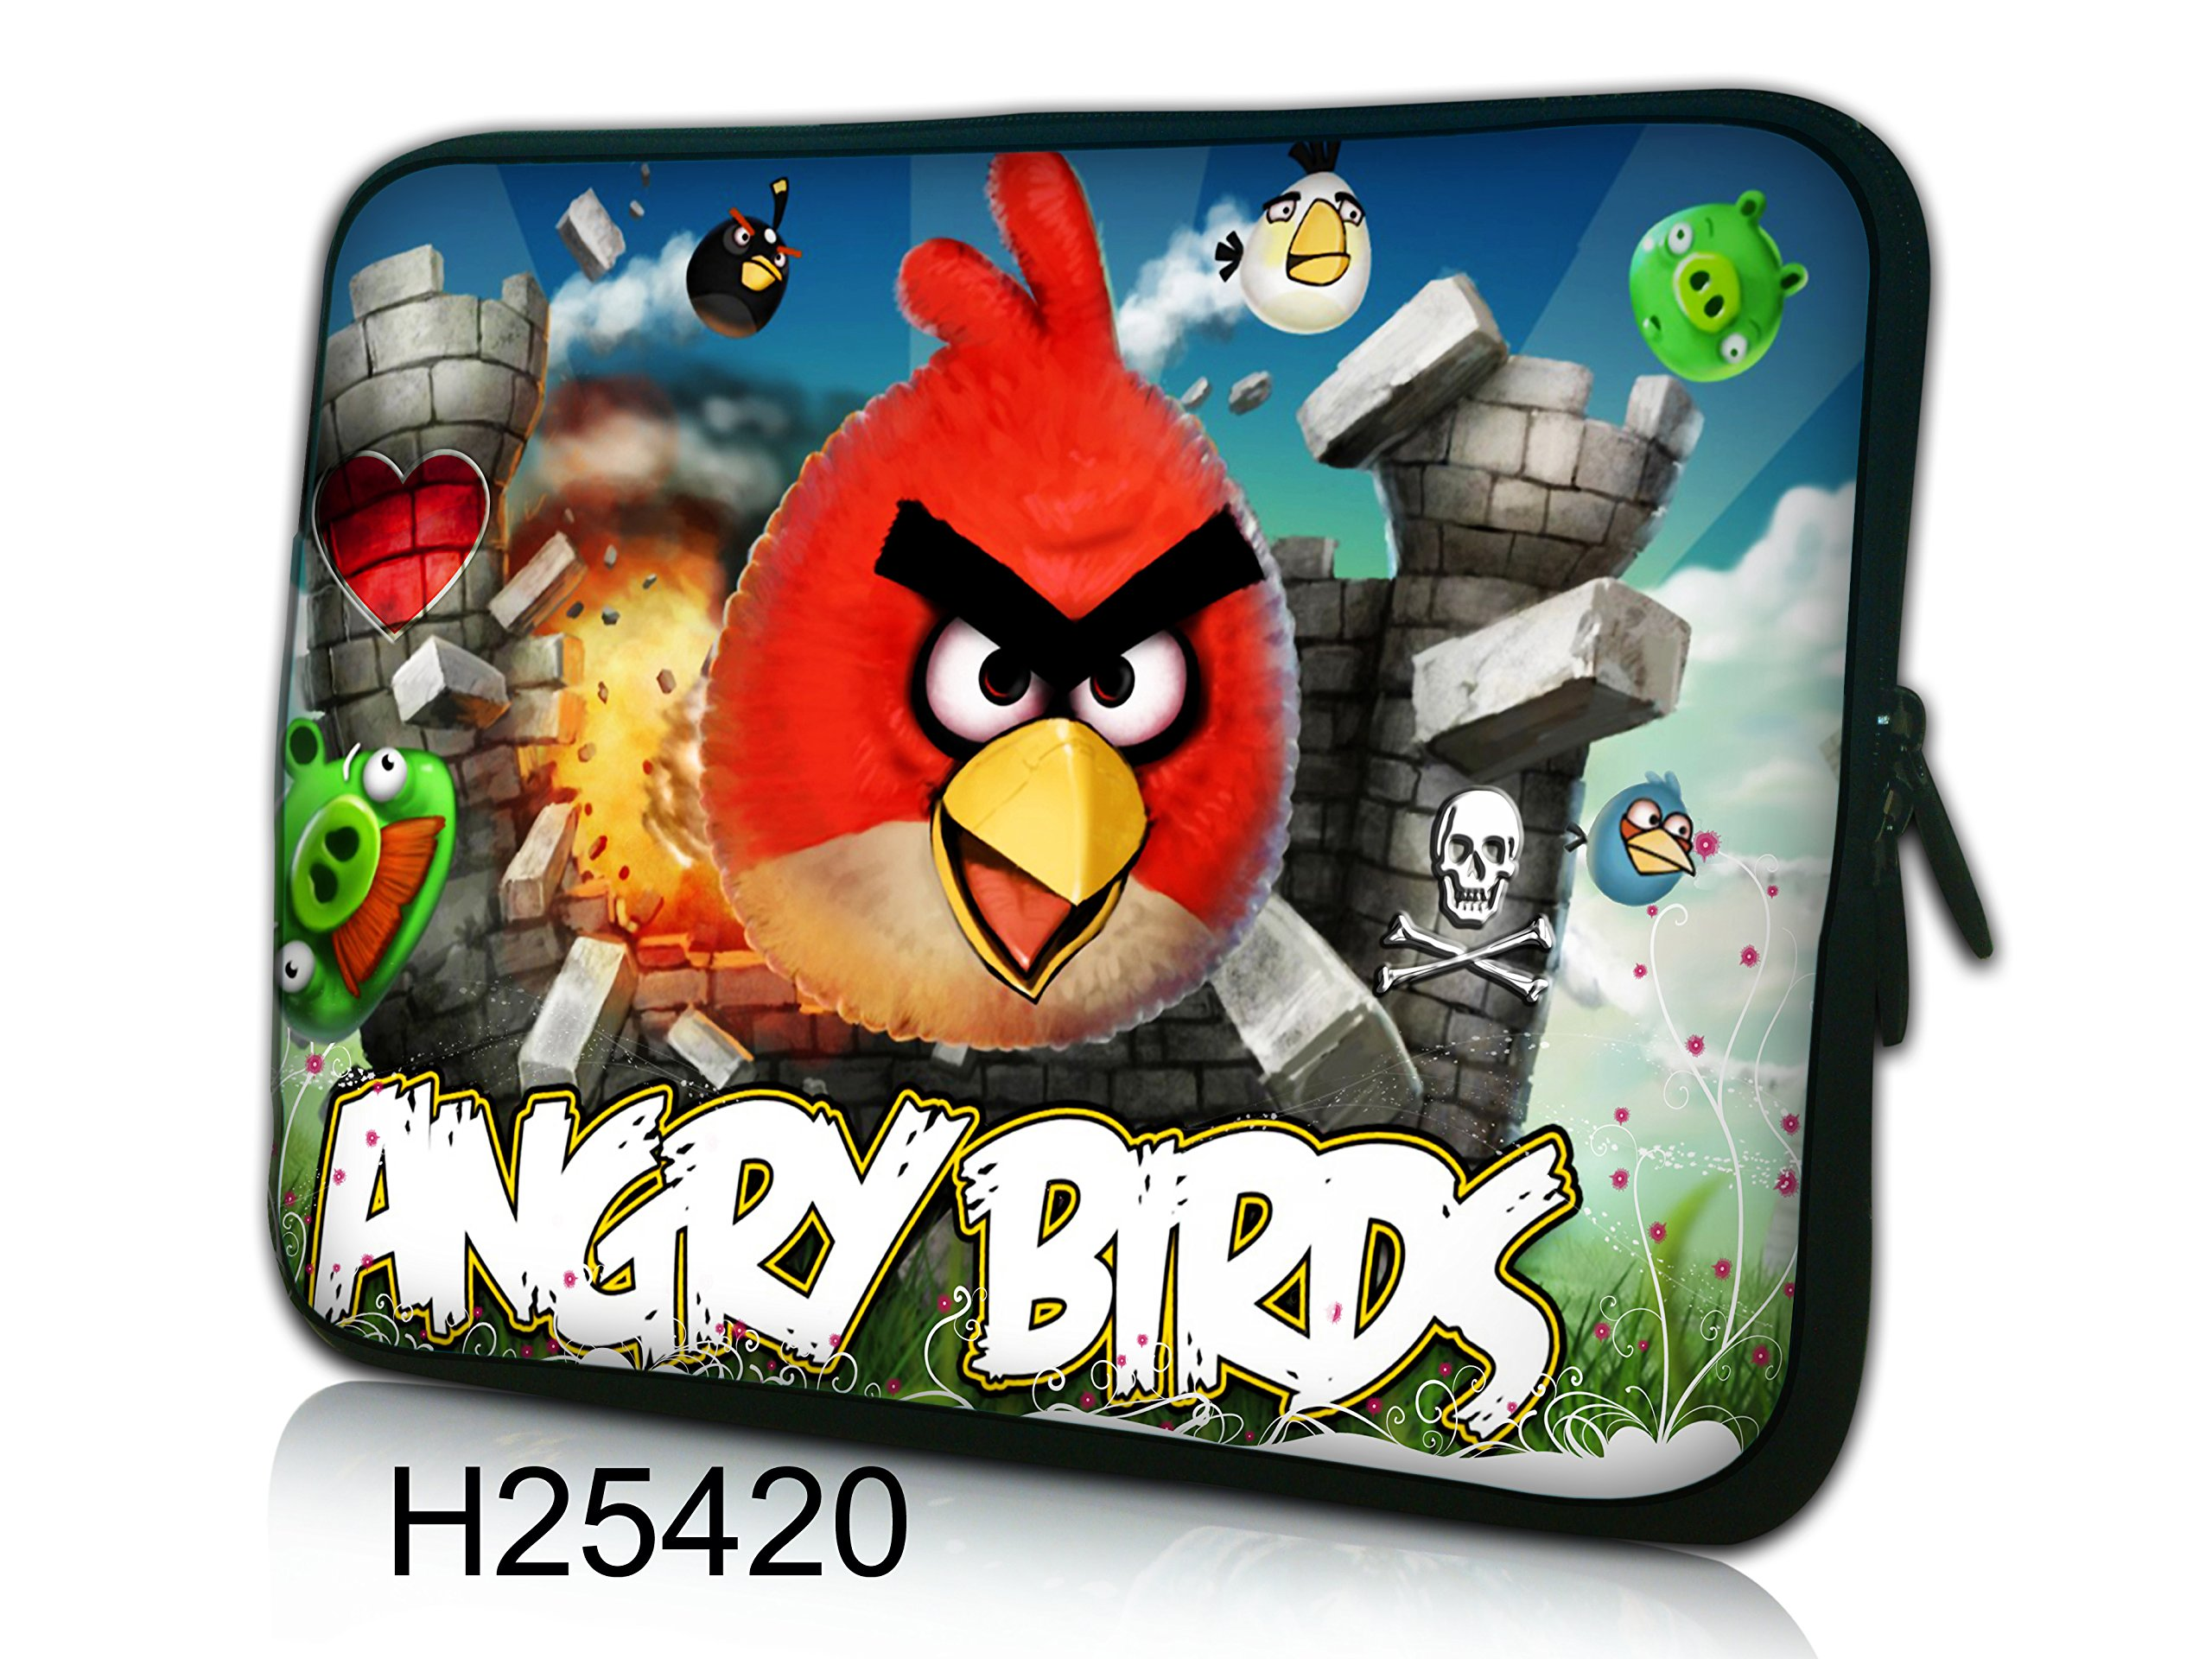 Funda blanda de neopreno para portátiles y tablets 17″- 17,6″. *Angry Bird Red*